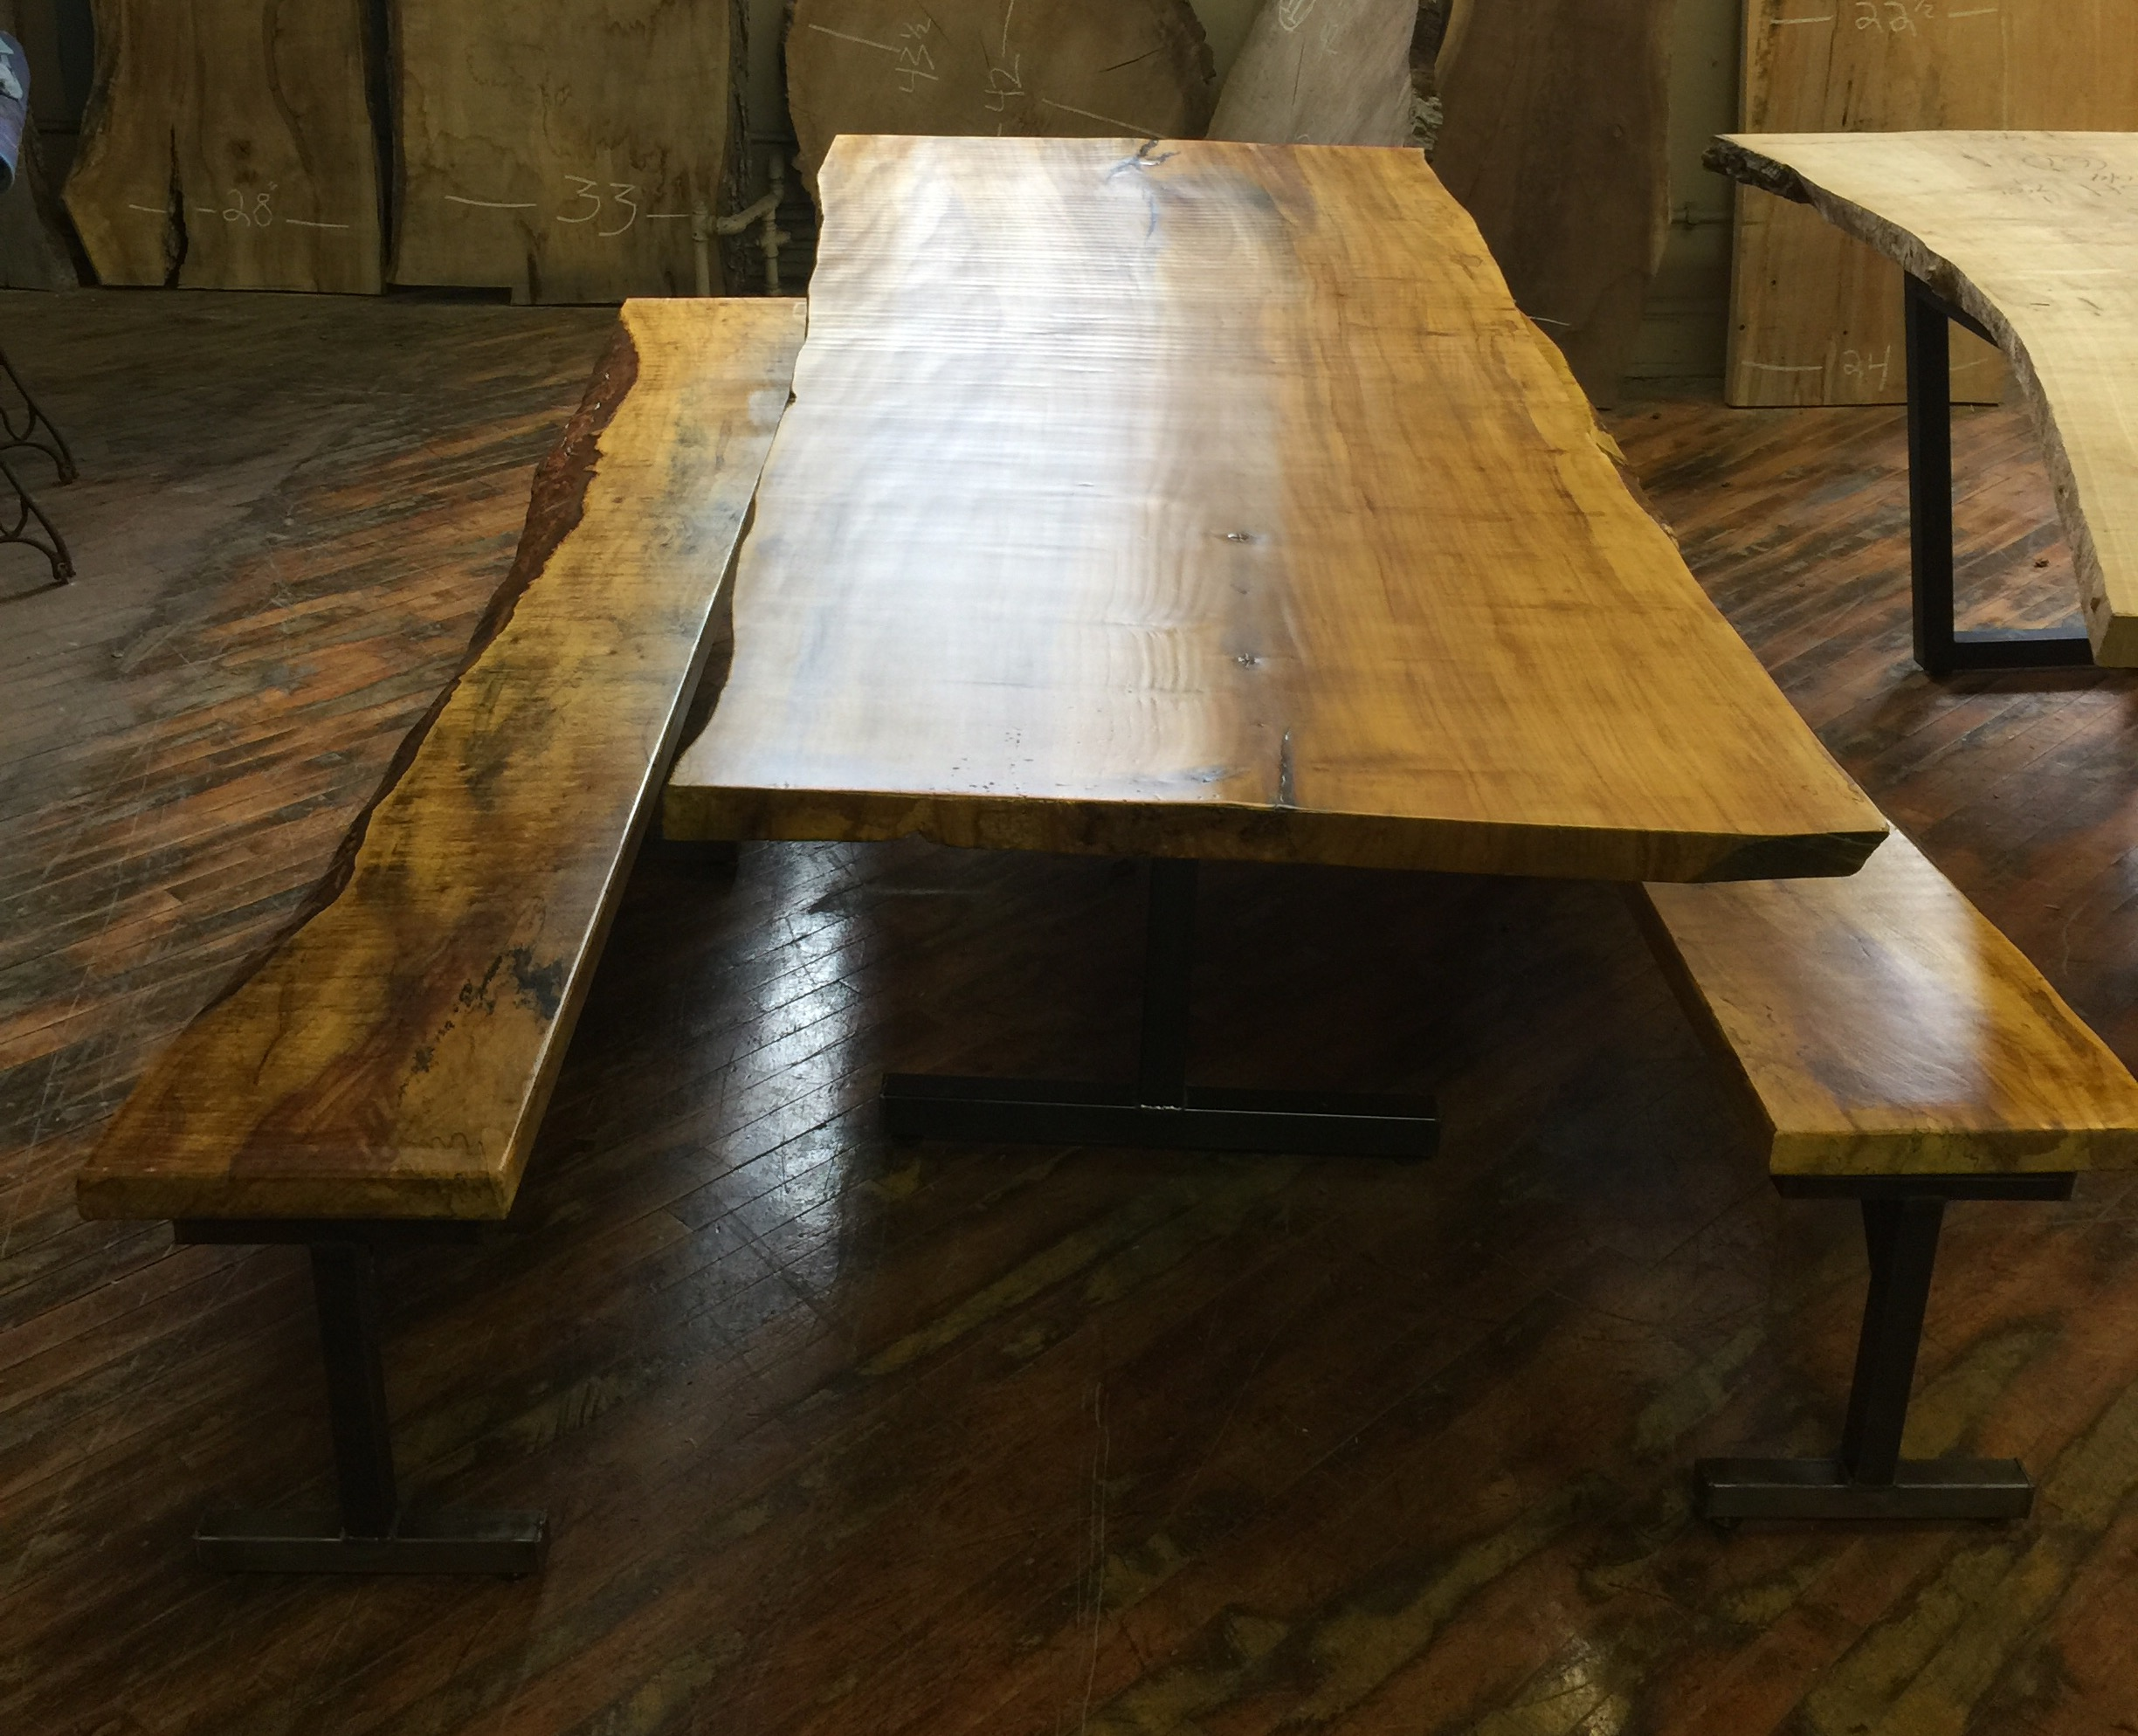 live-edge-maple-table-with-benches